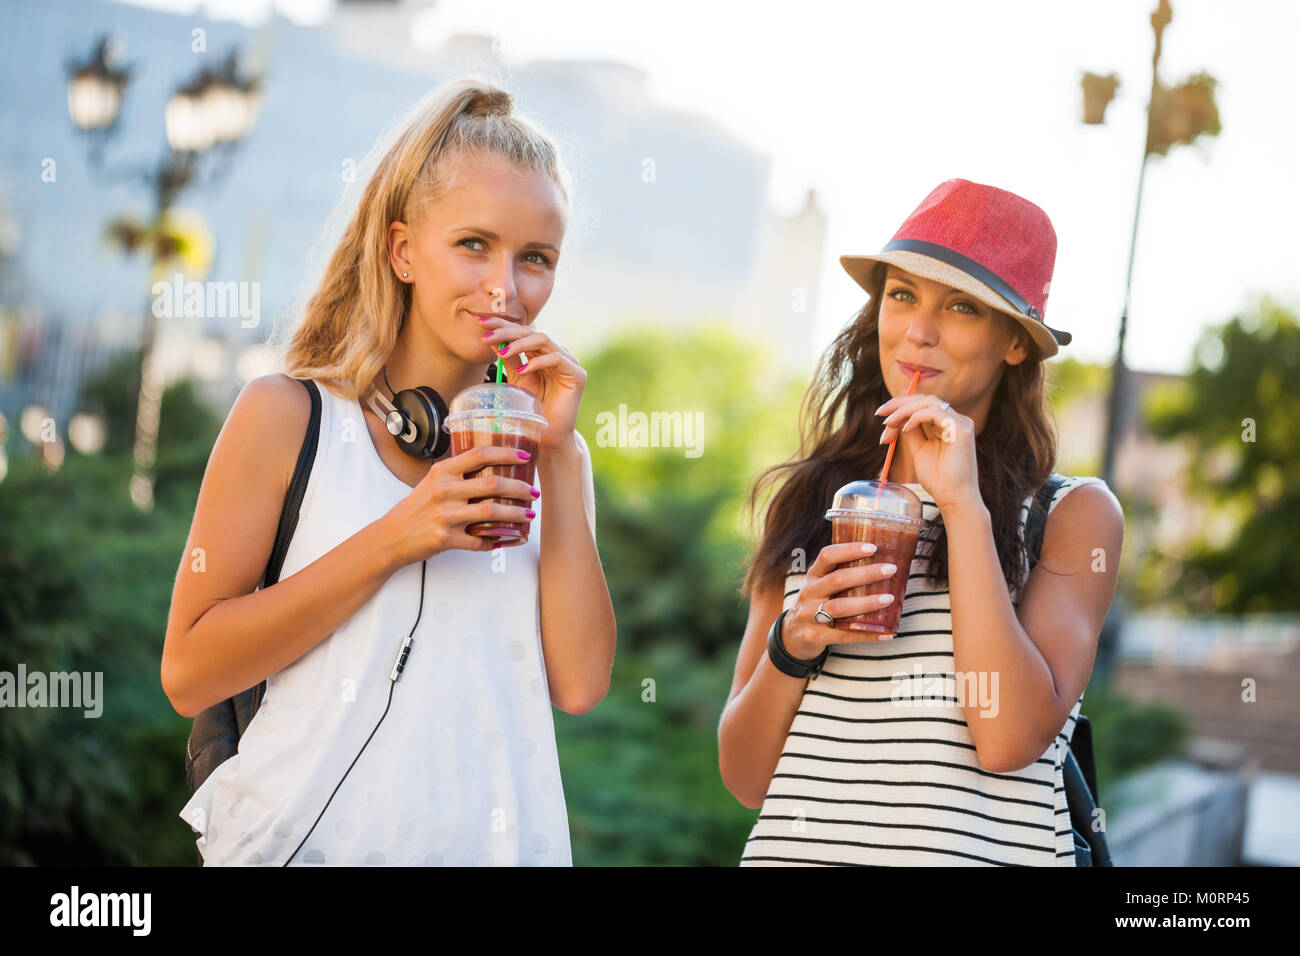 Two happy women are having nice time together in the city. They are drinking smoothie. - Stock Image